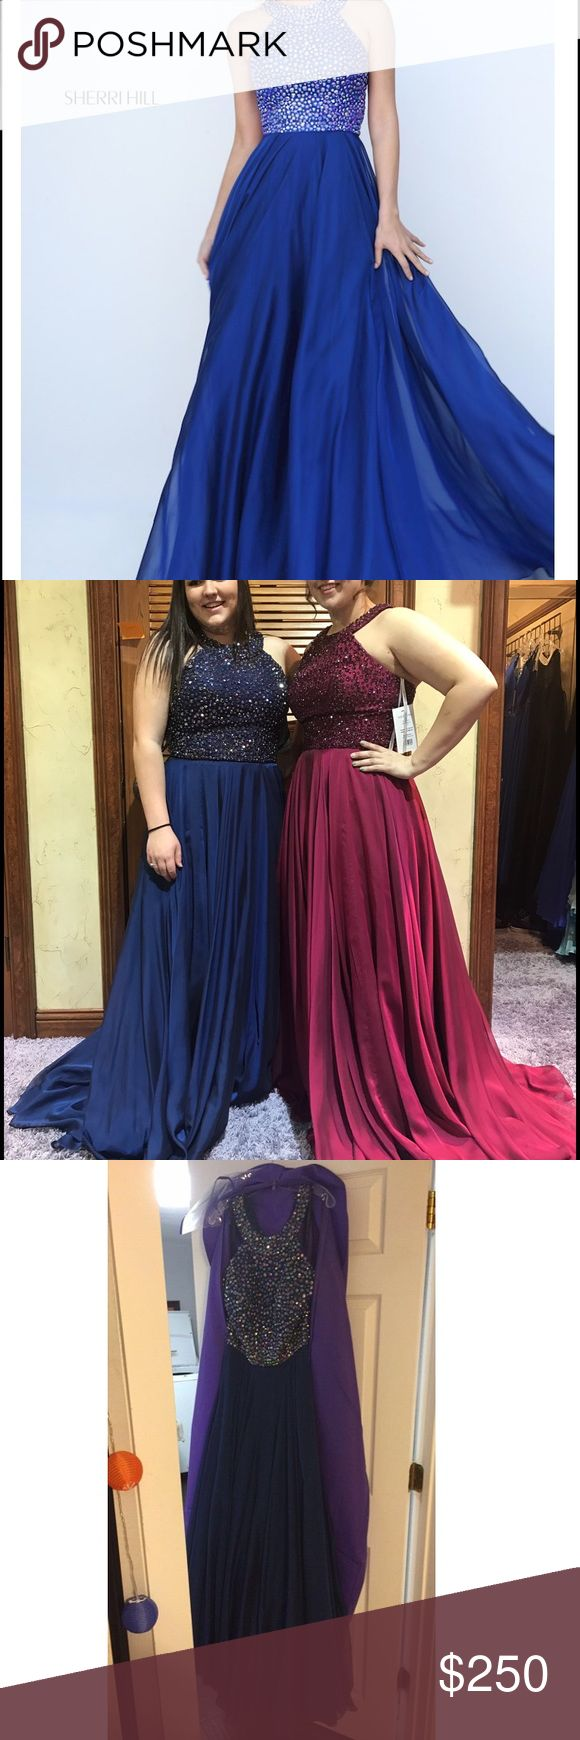 Sherri Hill 2017 prom dress size 16 I just bought this dress for  $500 at Whatchamacallit and it is beautiful, it has only been worn to be tried on and I am putting it for sale now incase someone wants it for there prom if it is after mine (which is April 22) I could ship it the next Monday of you are interested :) I will also include the shoes I got to go with it if you are interested (size 9) Sherri Hill Dresses Prom